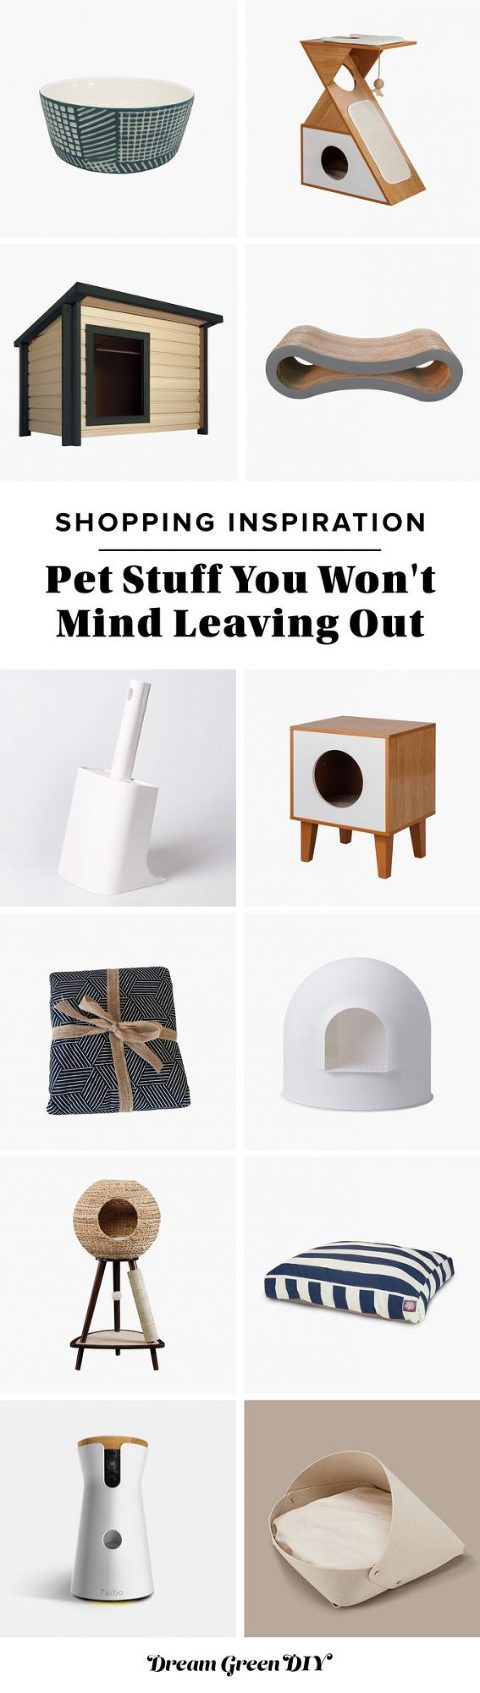 Pet Stuff You Won't Mind Leaving Out